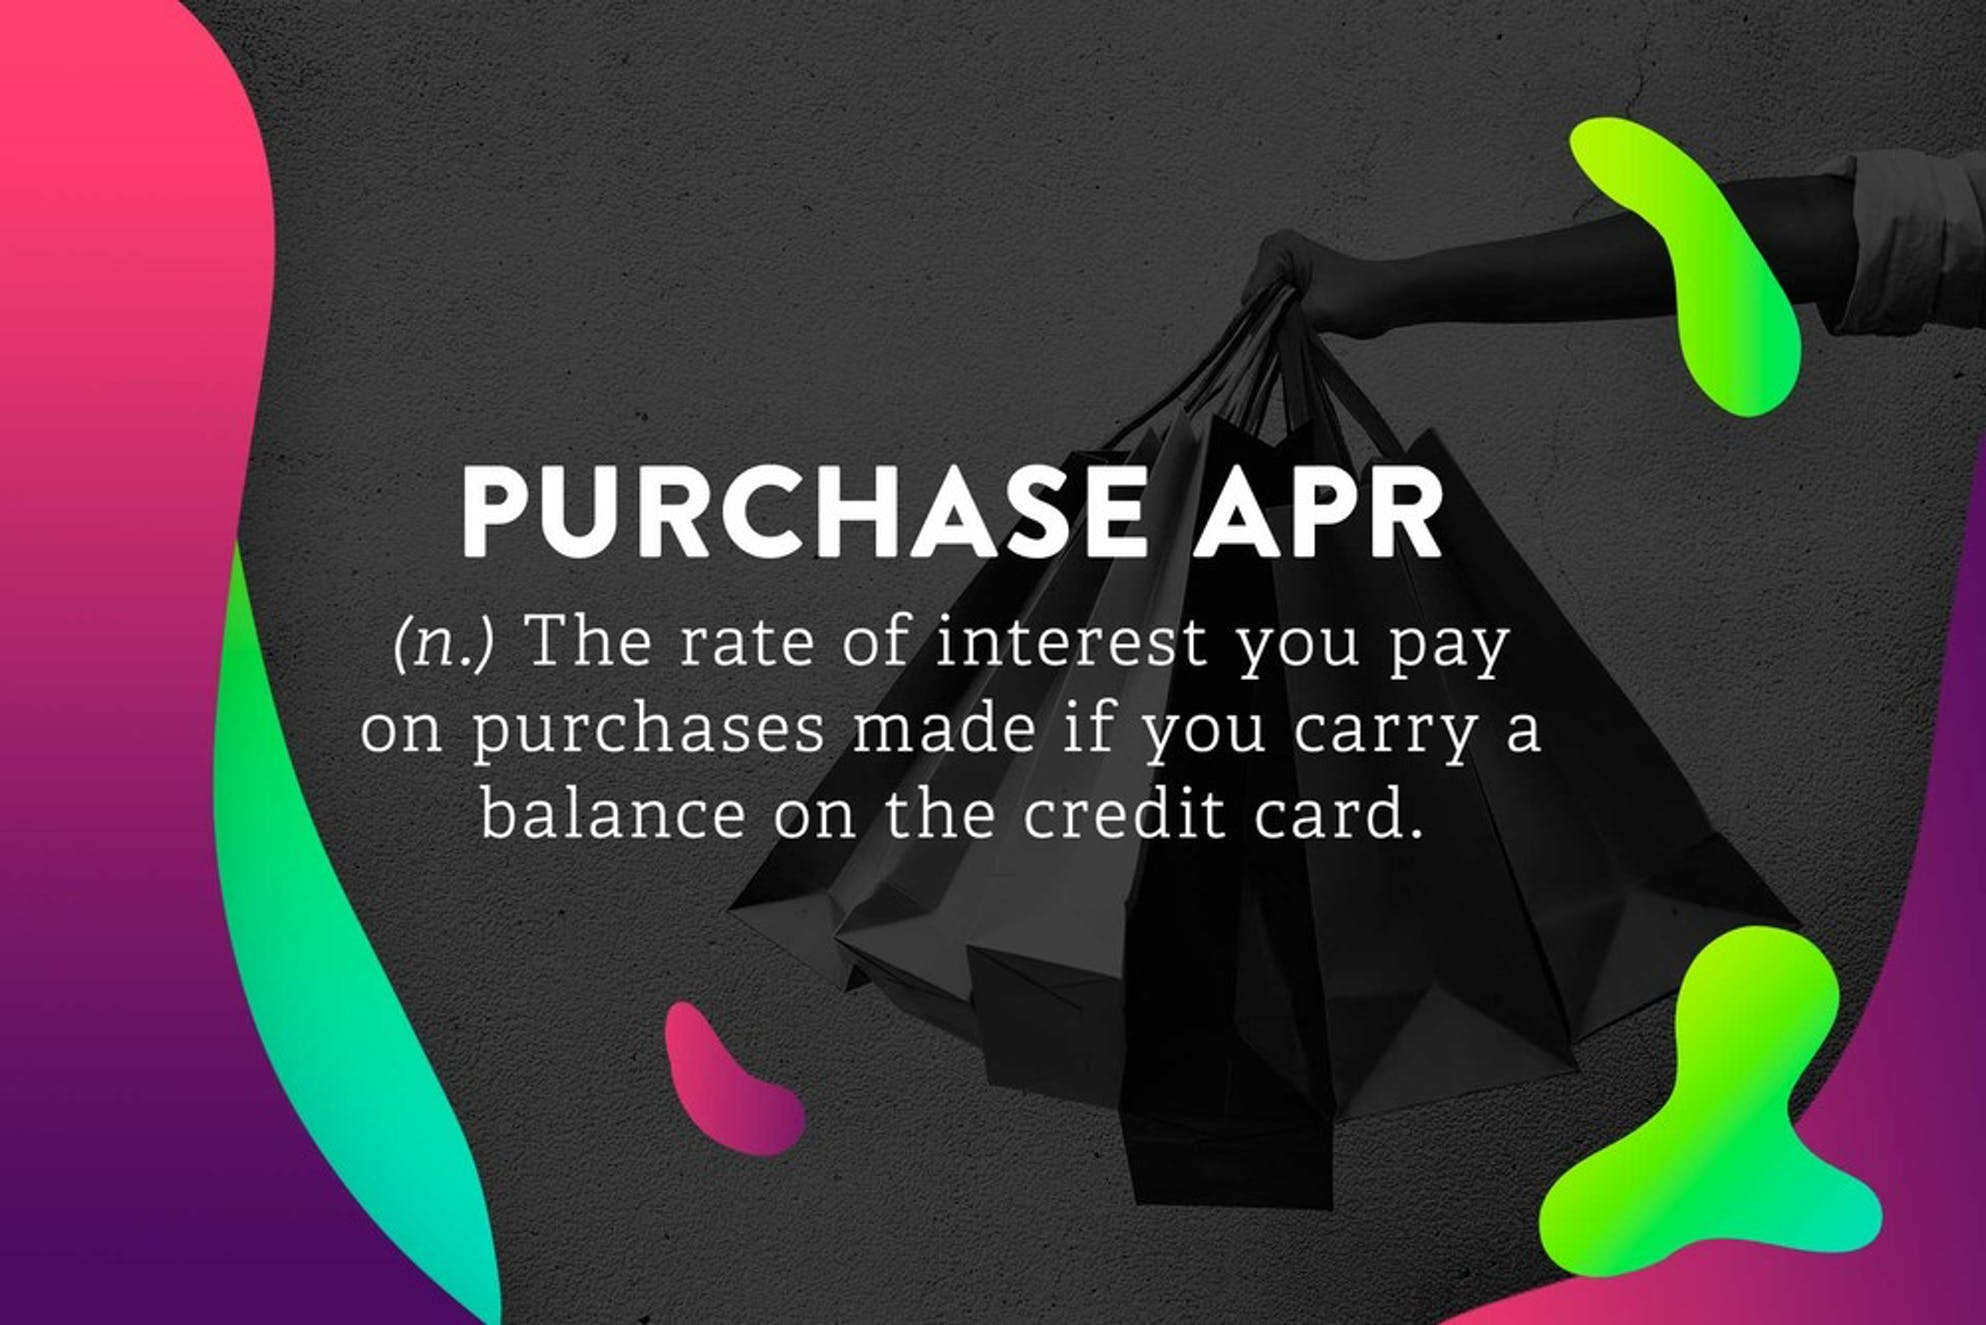 The definition of purchase APR and how it affects how much interest you pay on your credit card